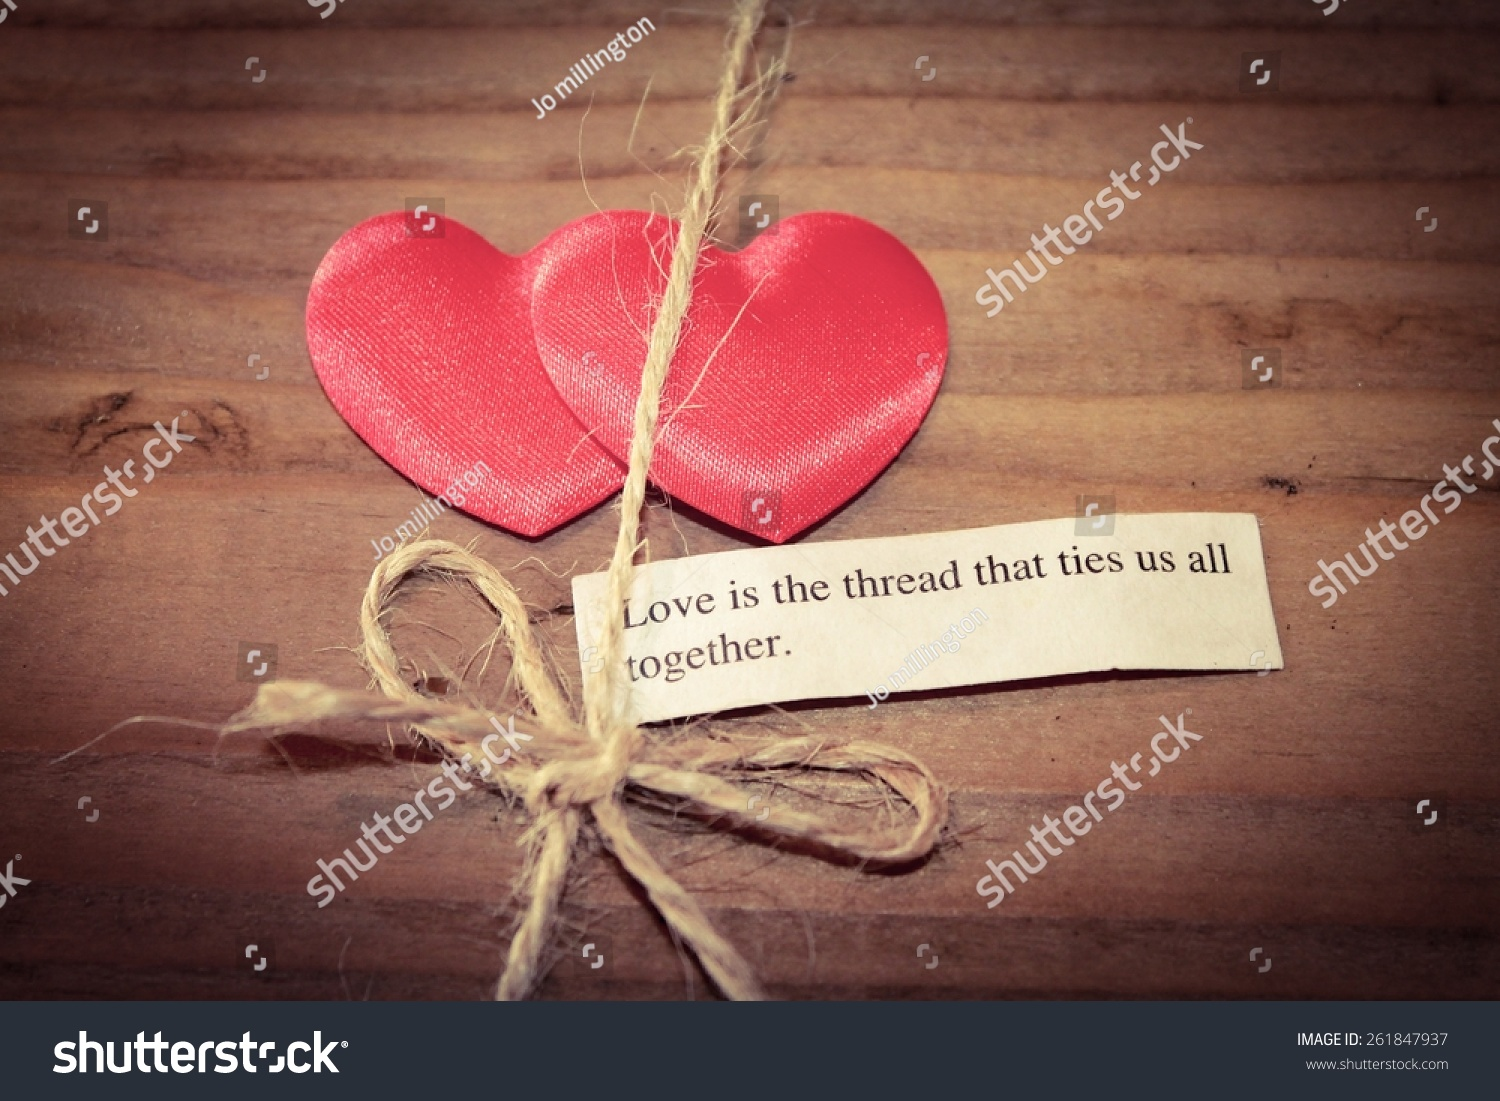 Two Hearts Tied Together Quote Love Stock Photo Edit Now 261847937